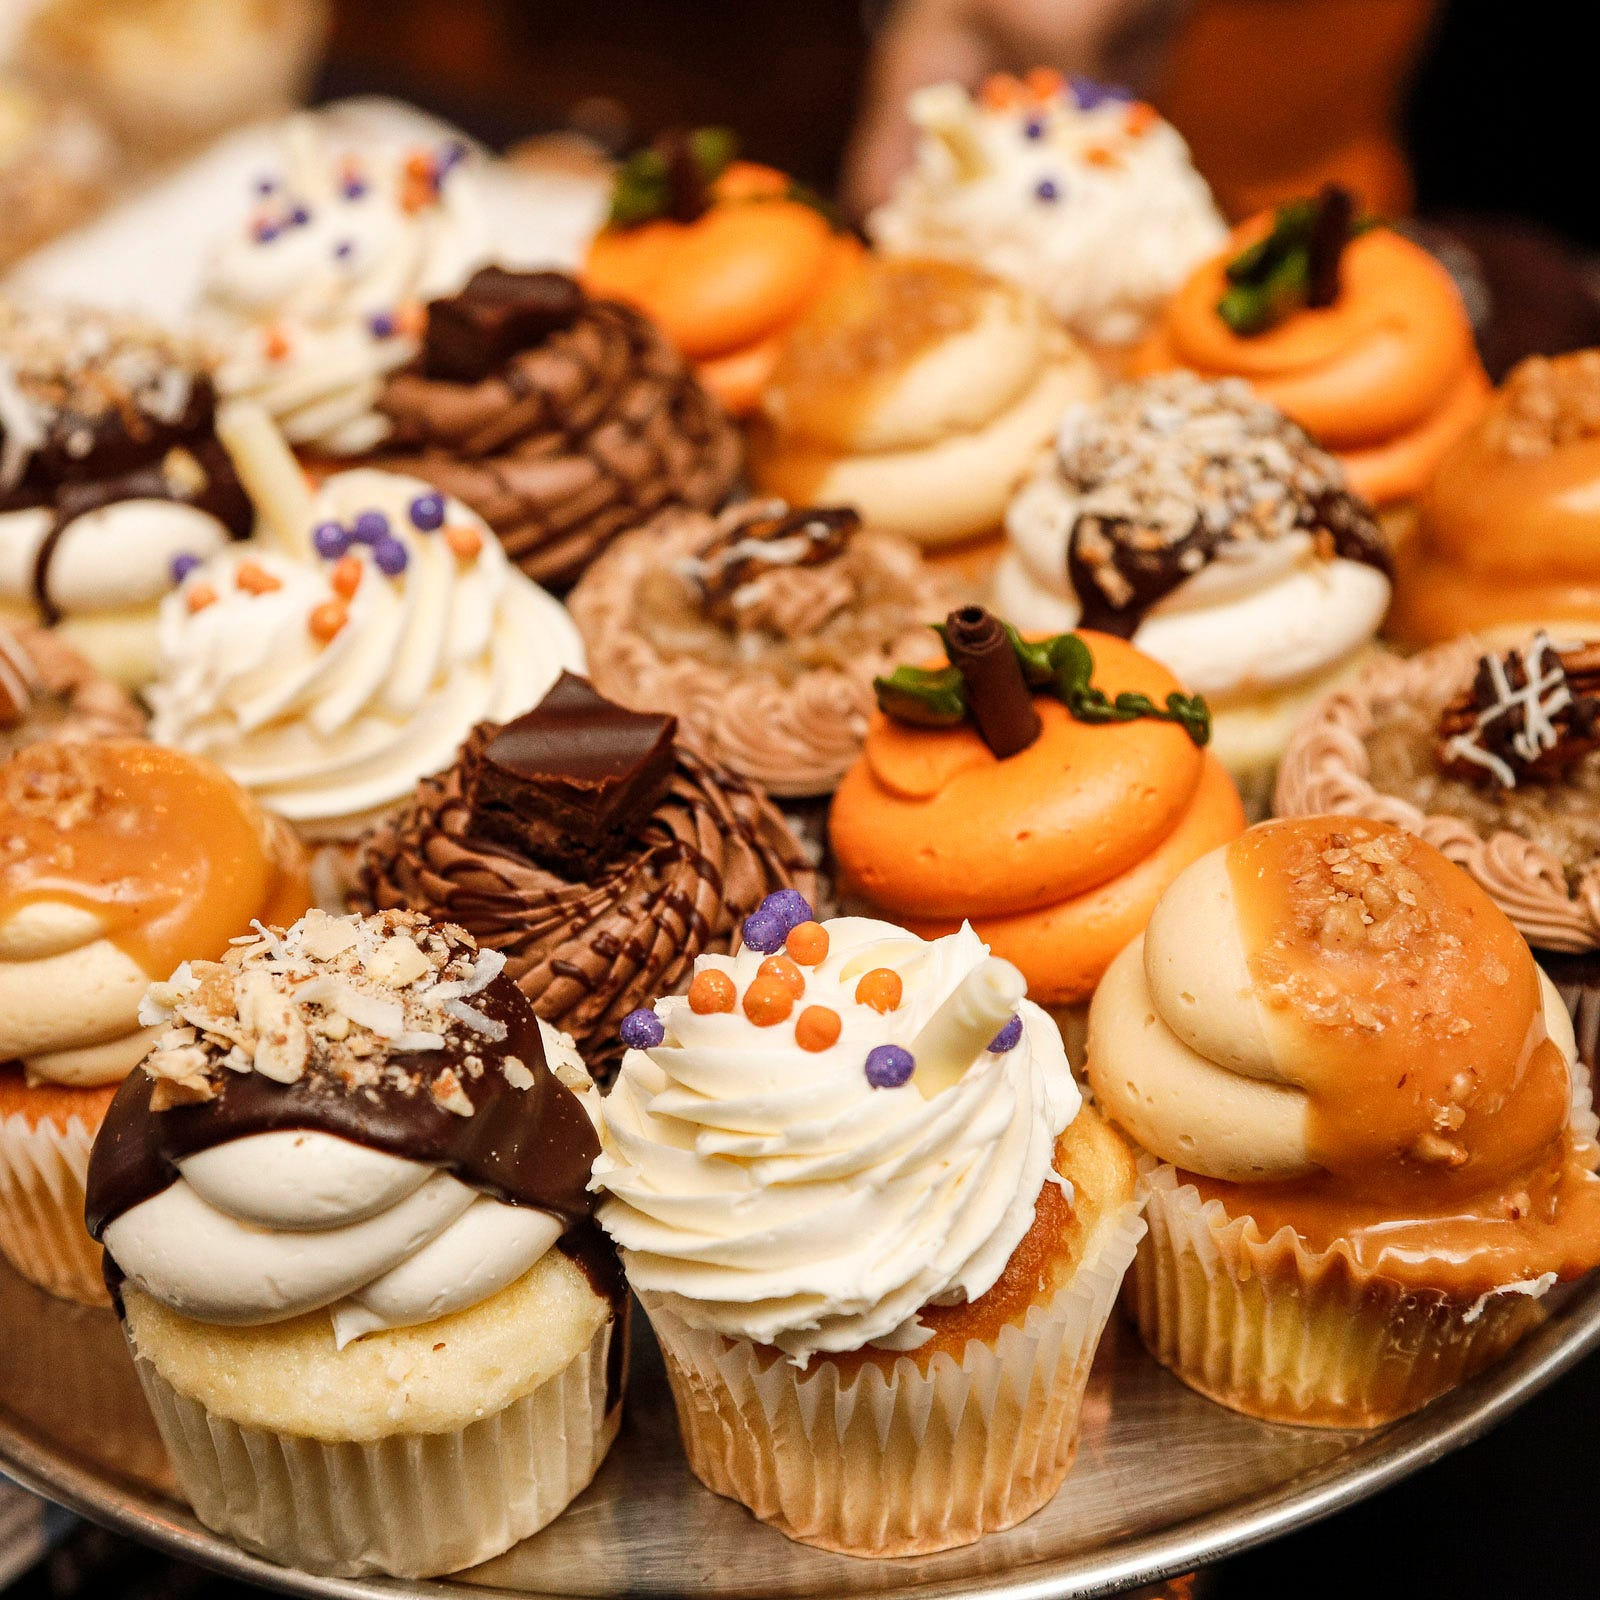 Tickets for Whisked: A Holiday Baking Event go on sale at noon Friday